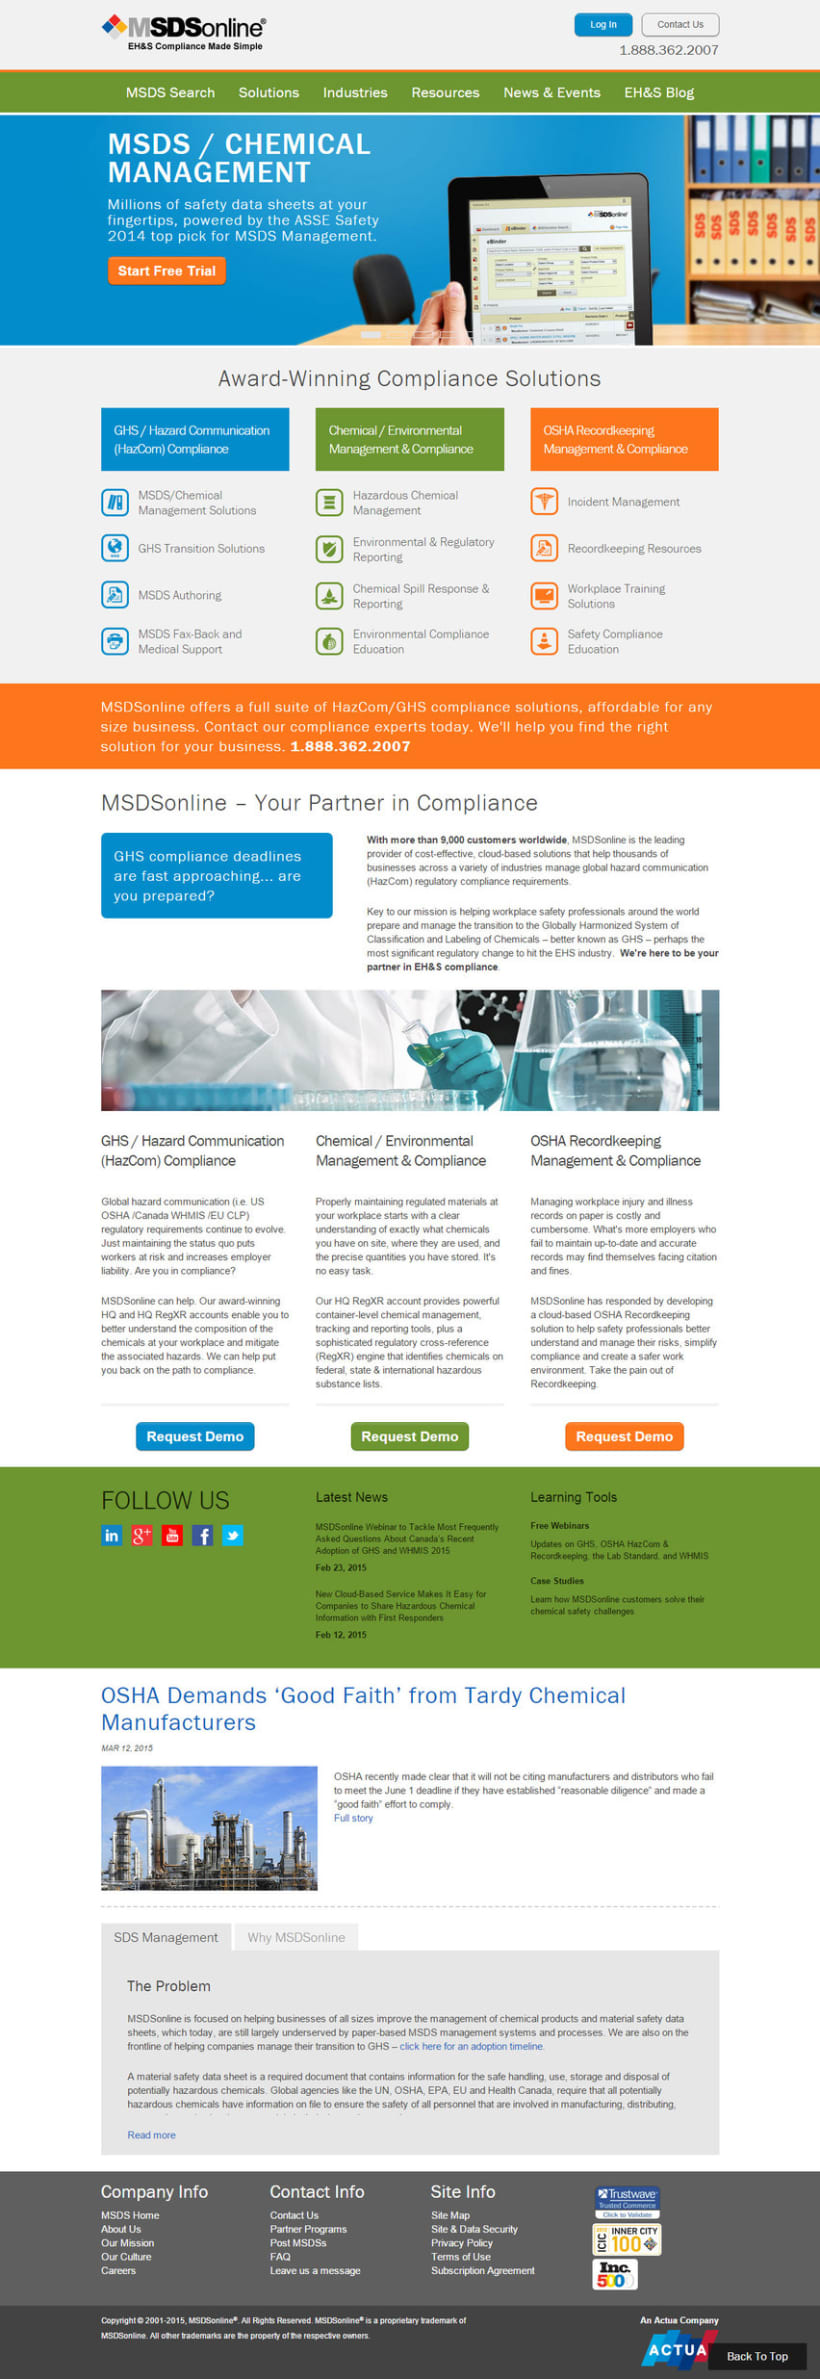 MSDSonline Corporate Website Redesign 0